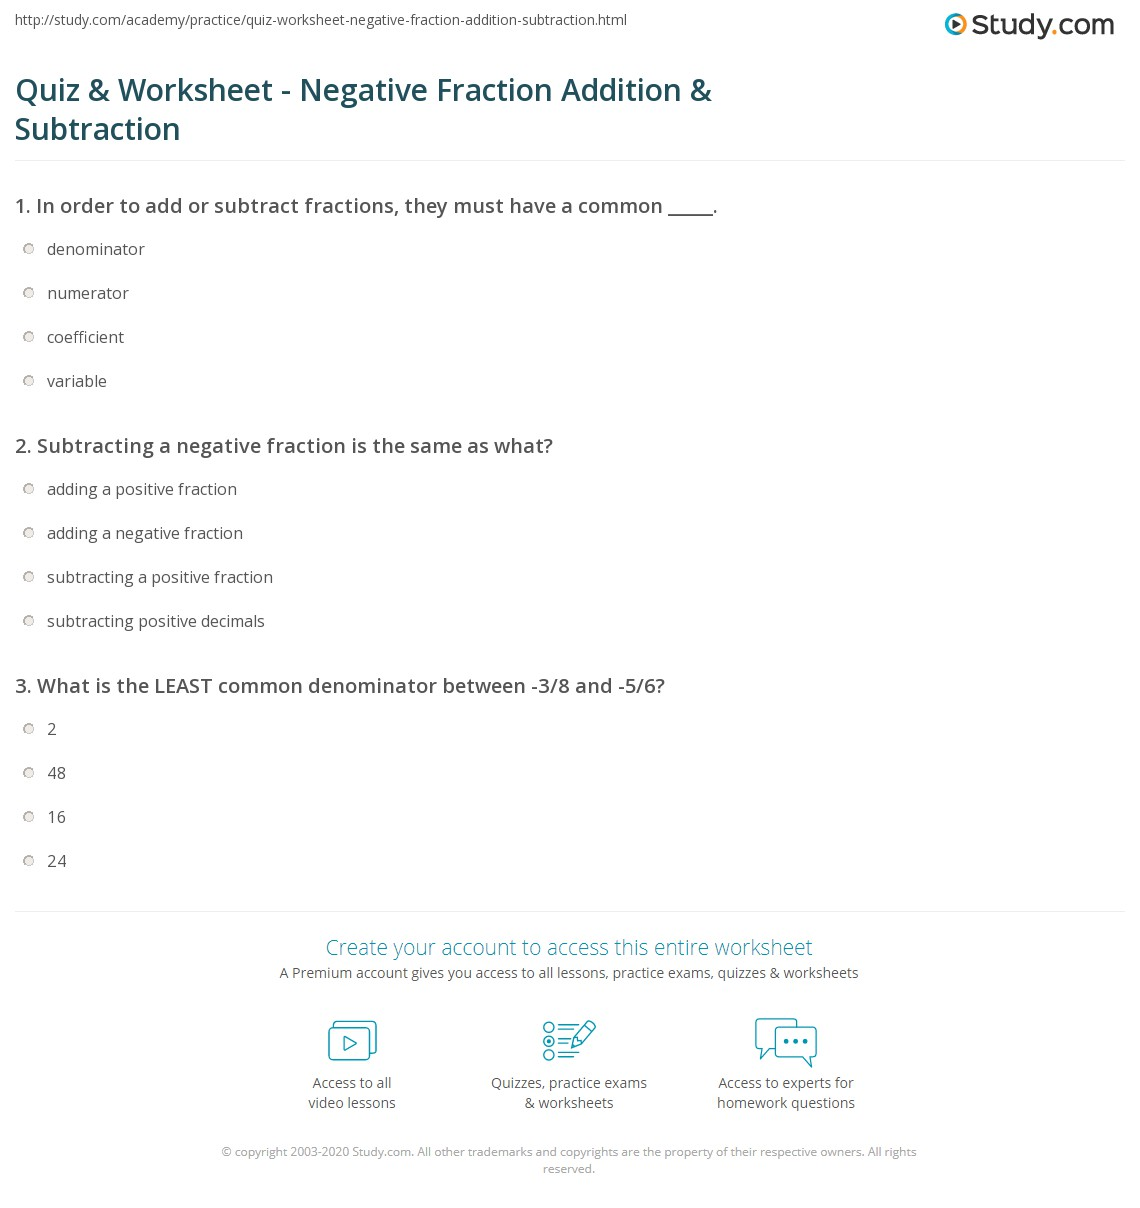 math worksheet : quiz  worksheet  negative fraction addition  subtraction  : Fraction Quiz Worksheet